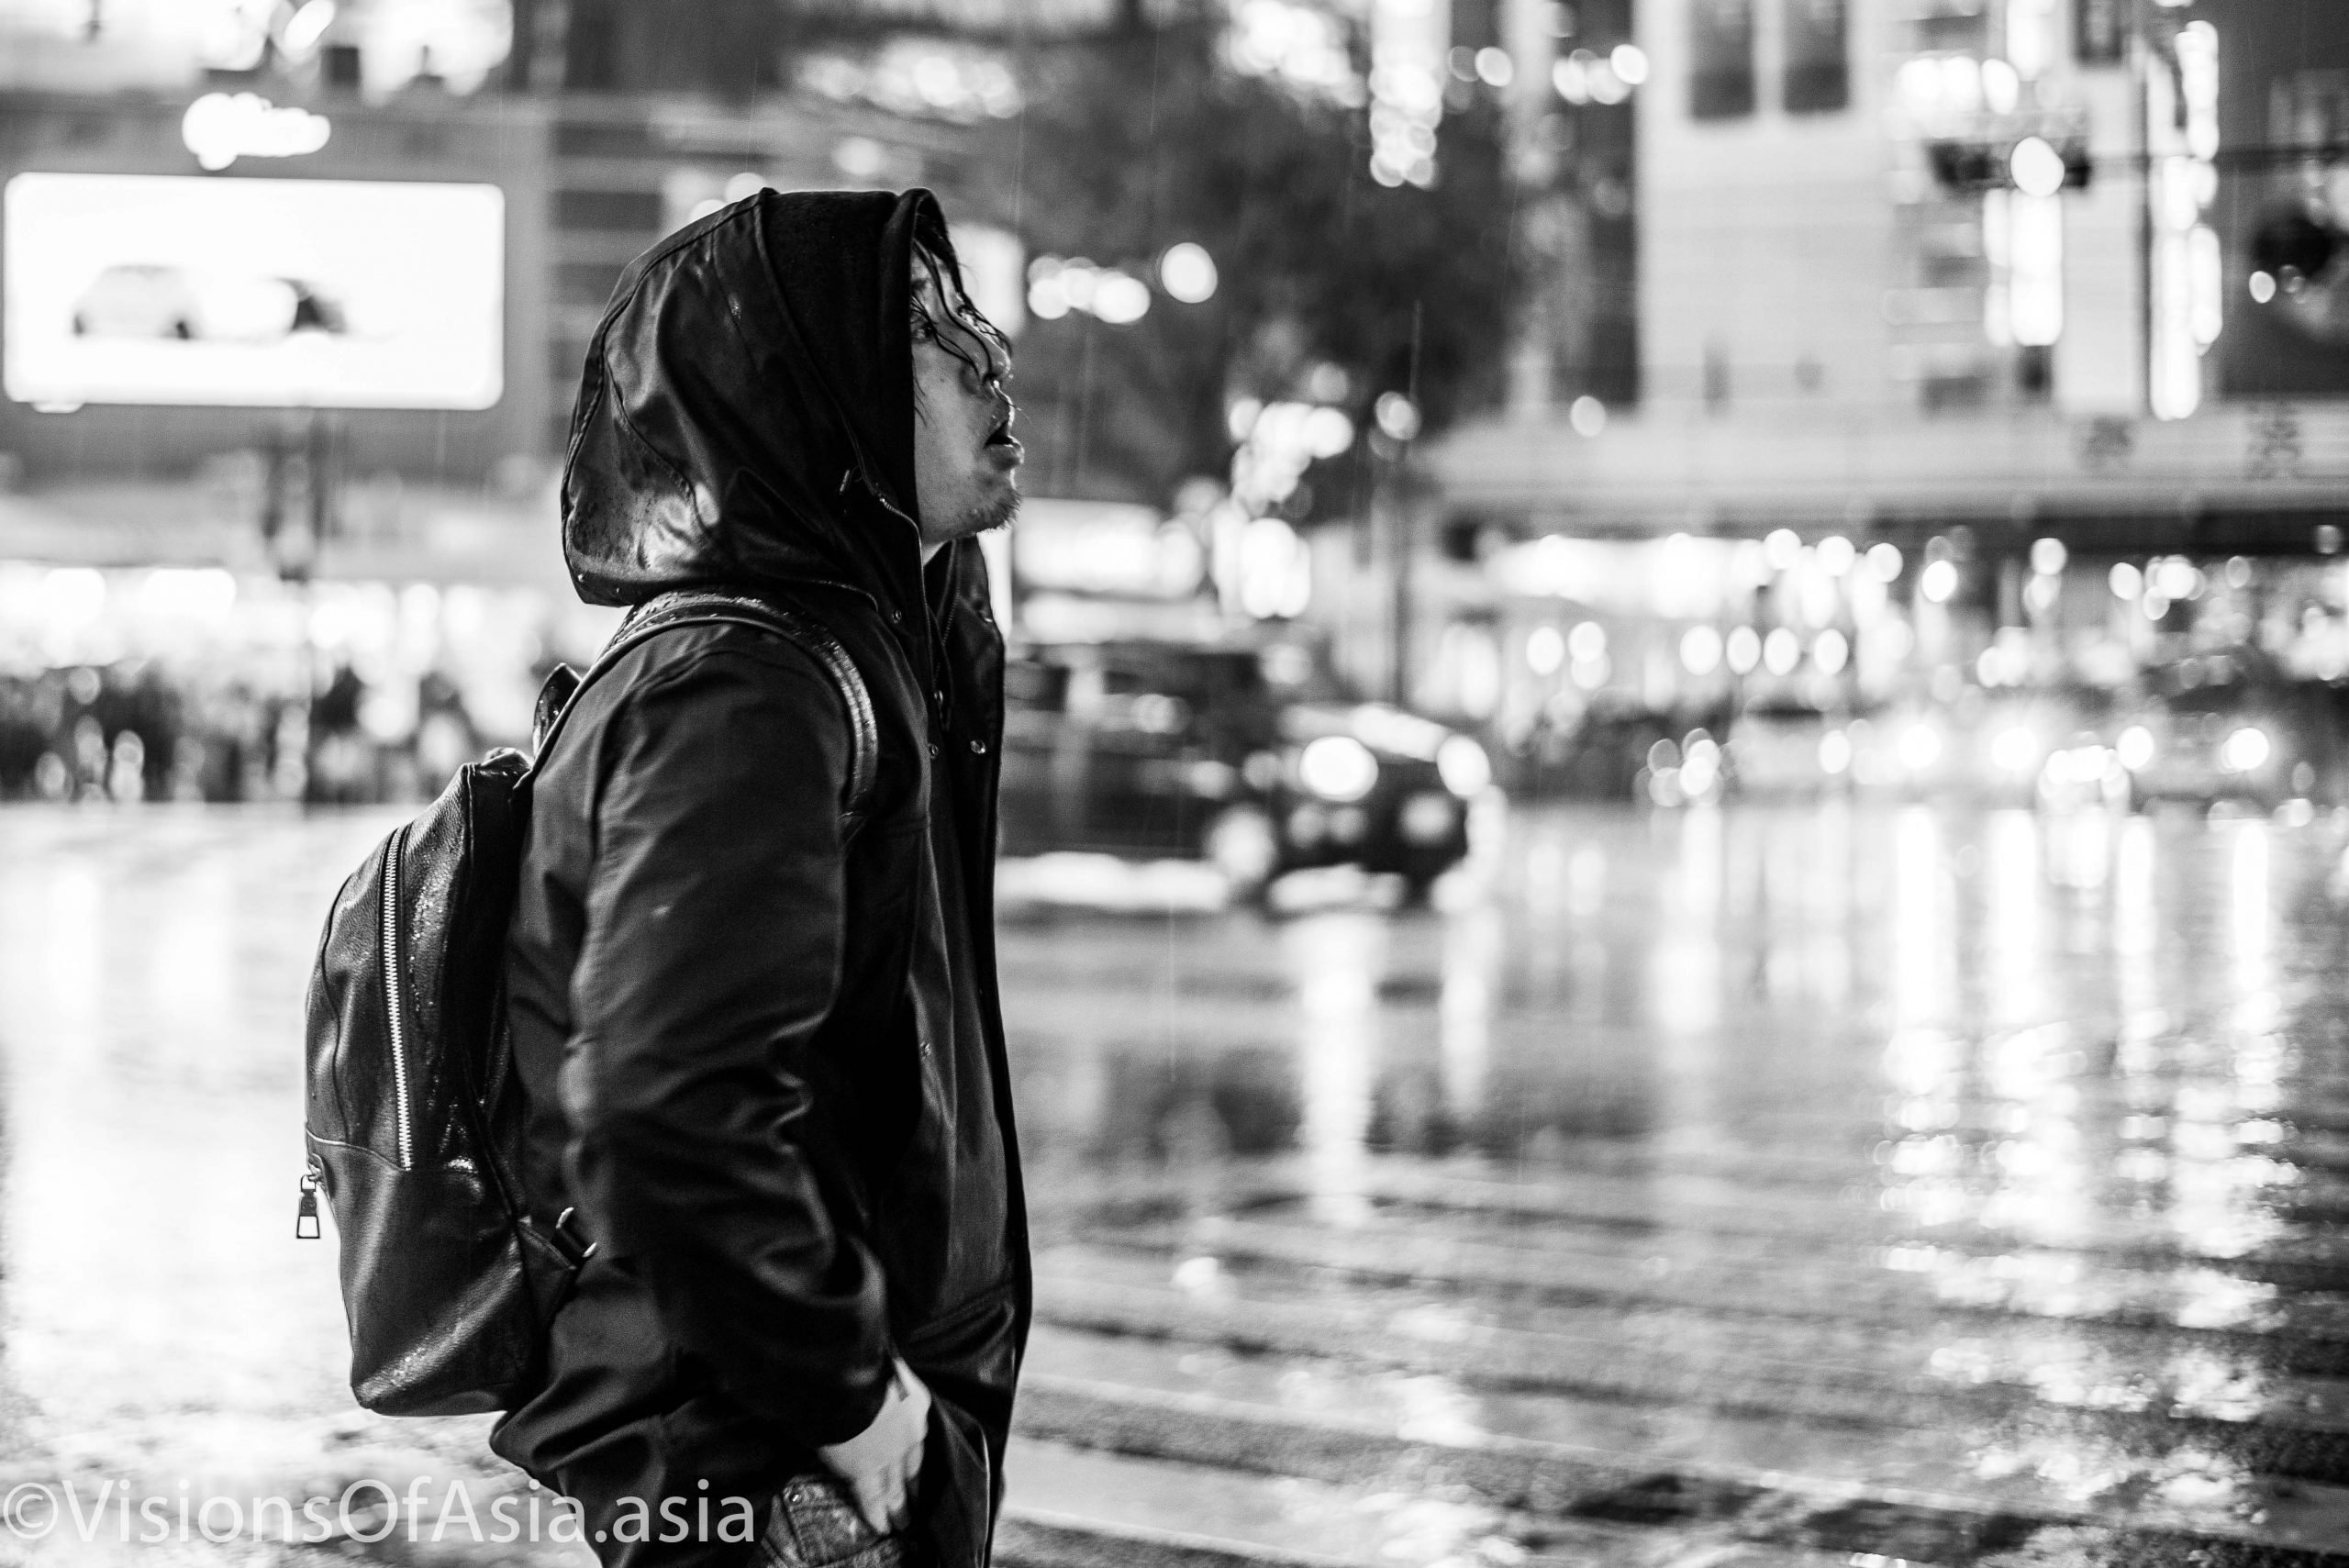 Rainy Night in Shibuya